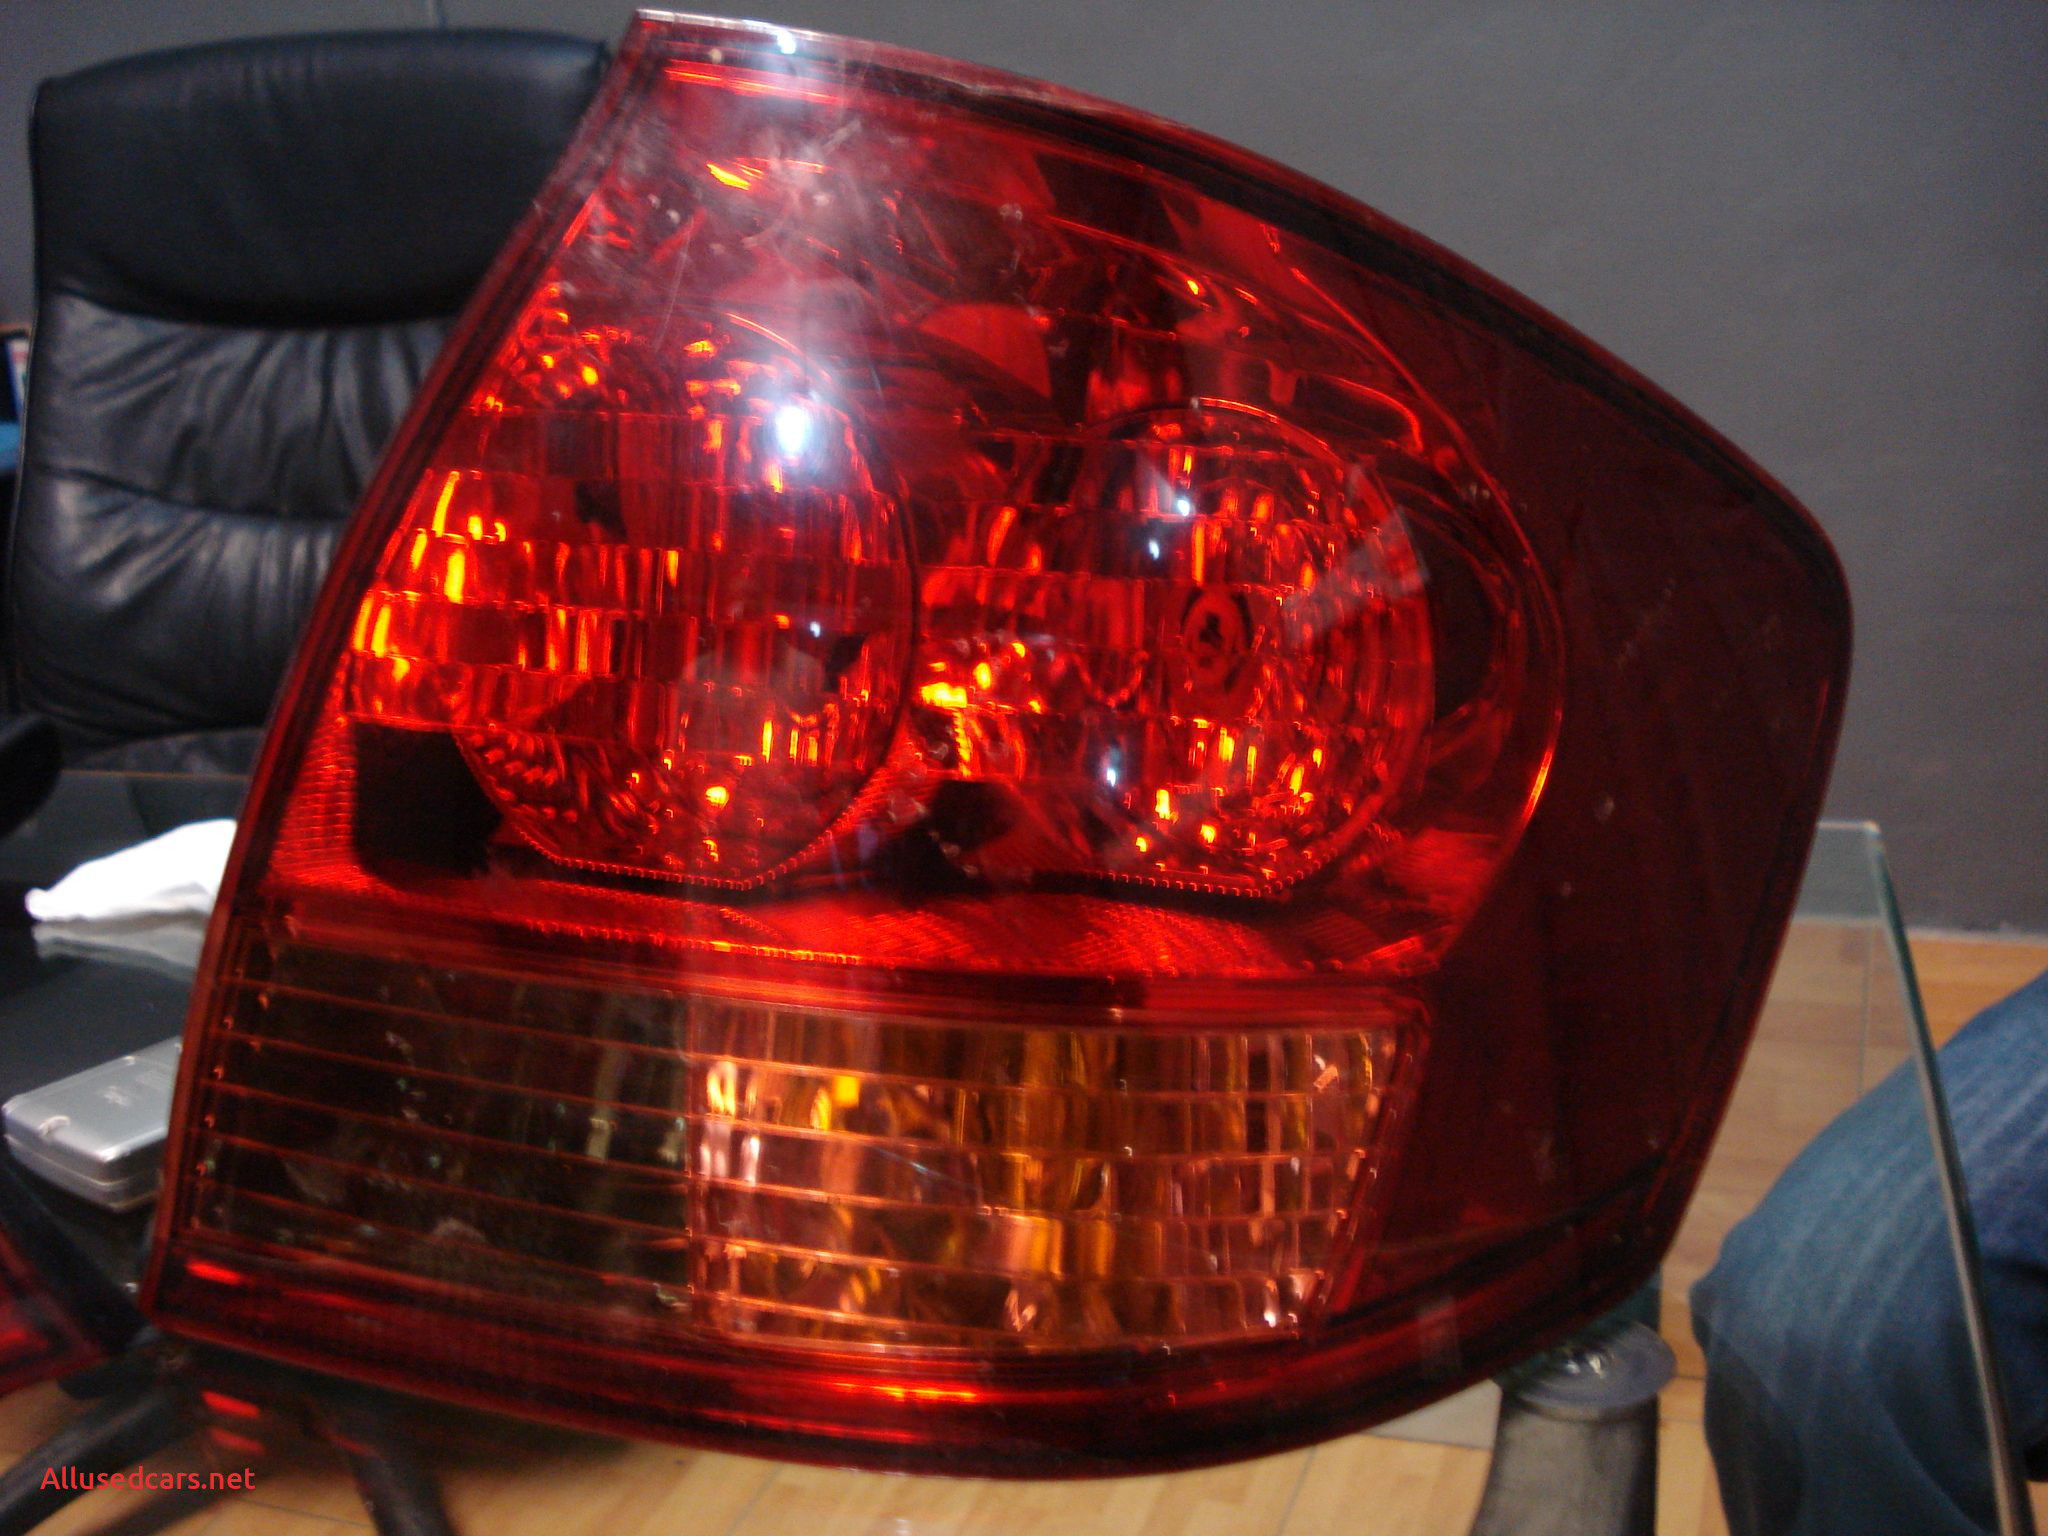 2012 Acura Tl Beautiful toyota Allion Backlights 2003 07 Aicars